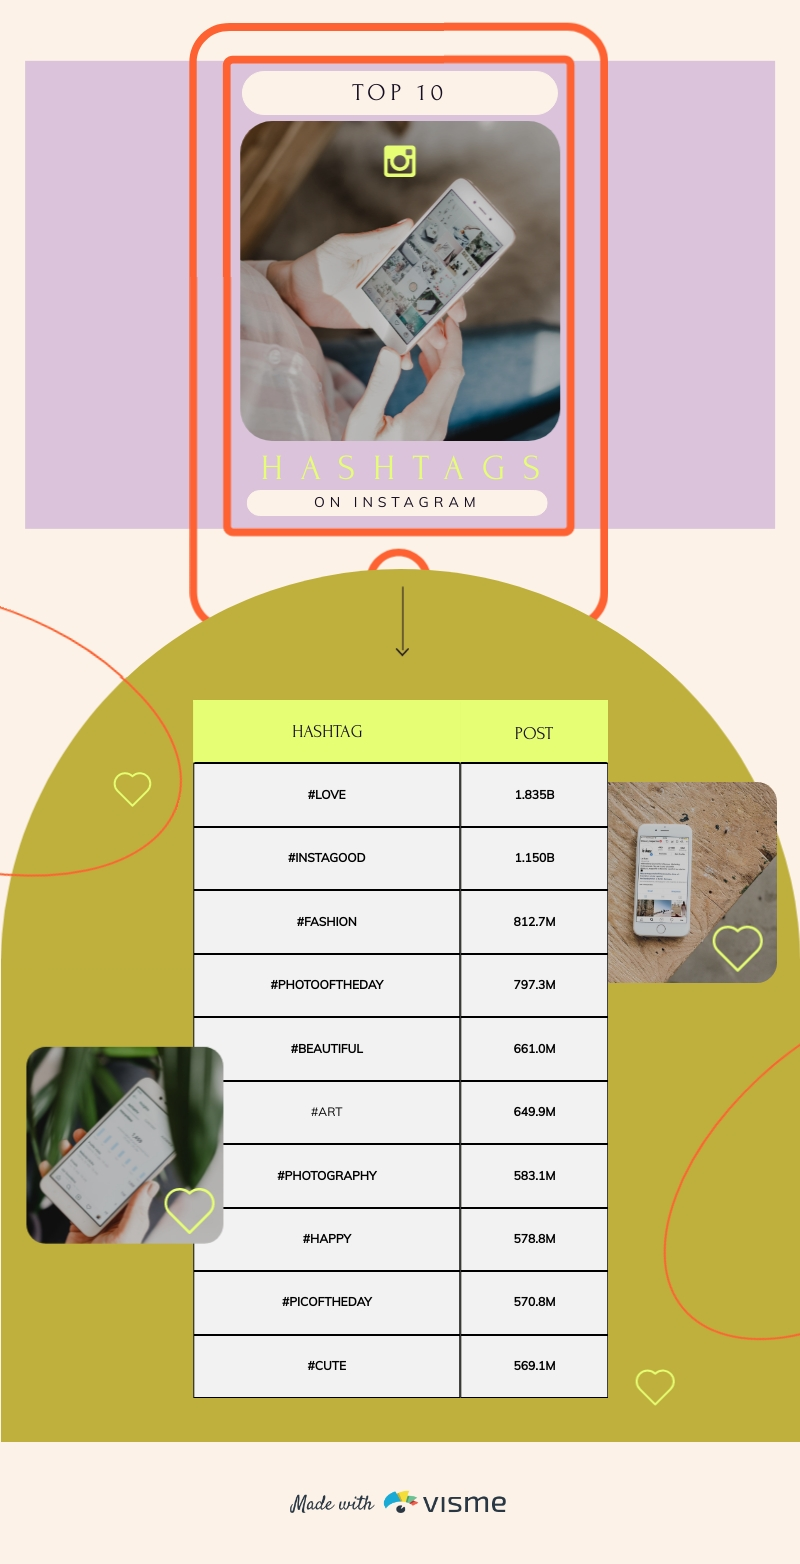 Top 10 Hashtags on Instagram - Infographic Template